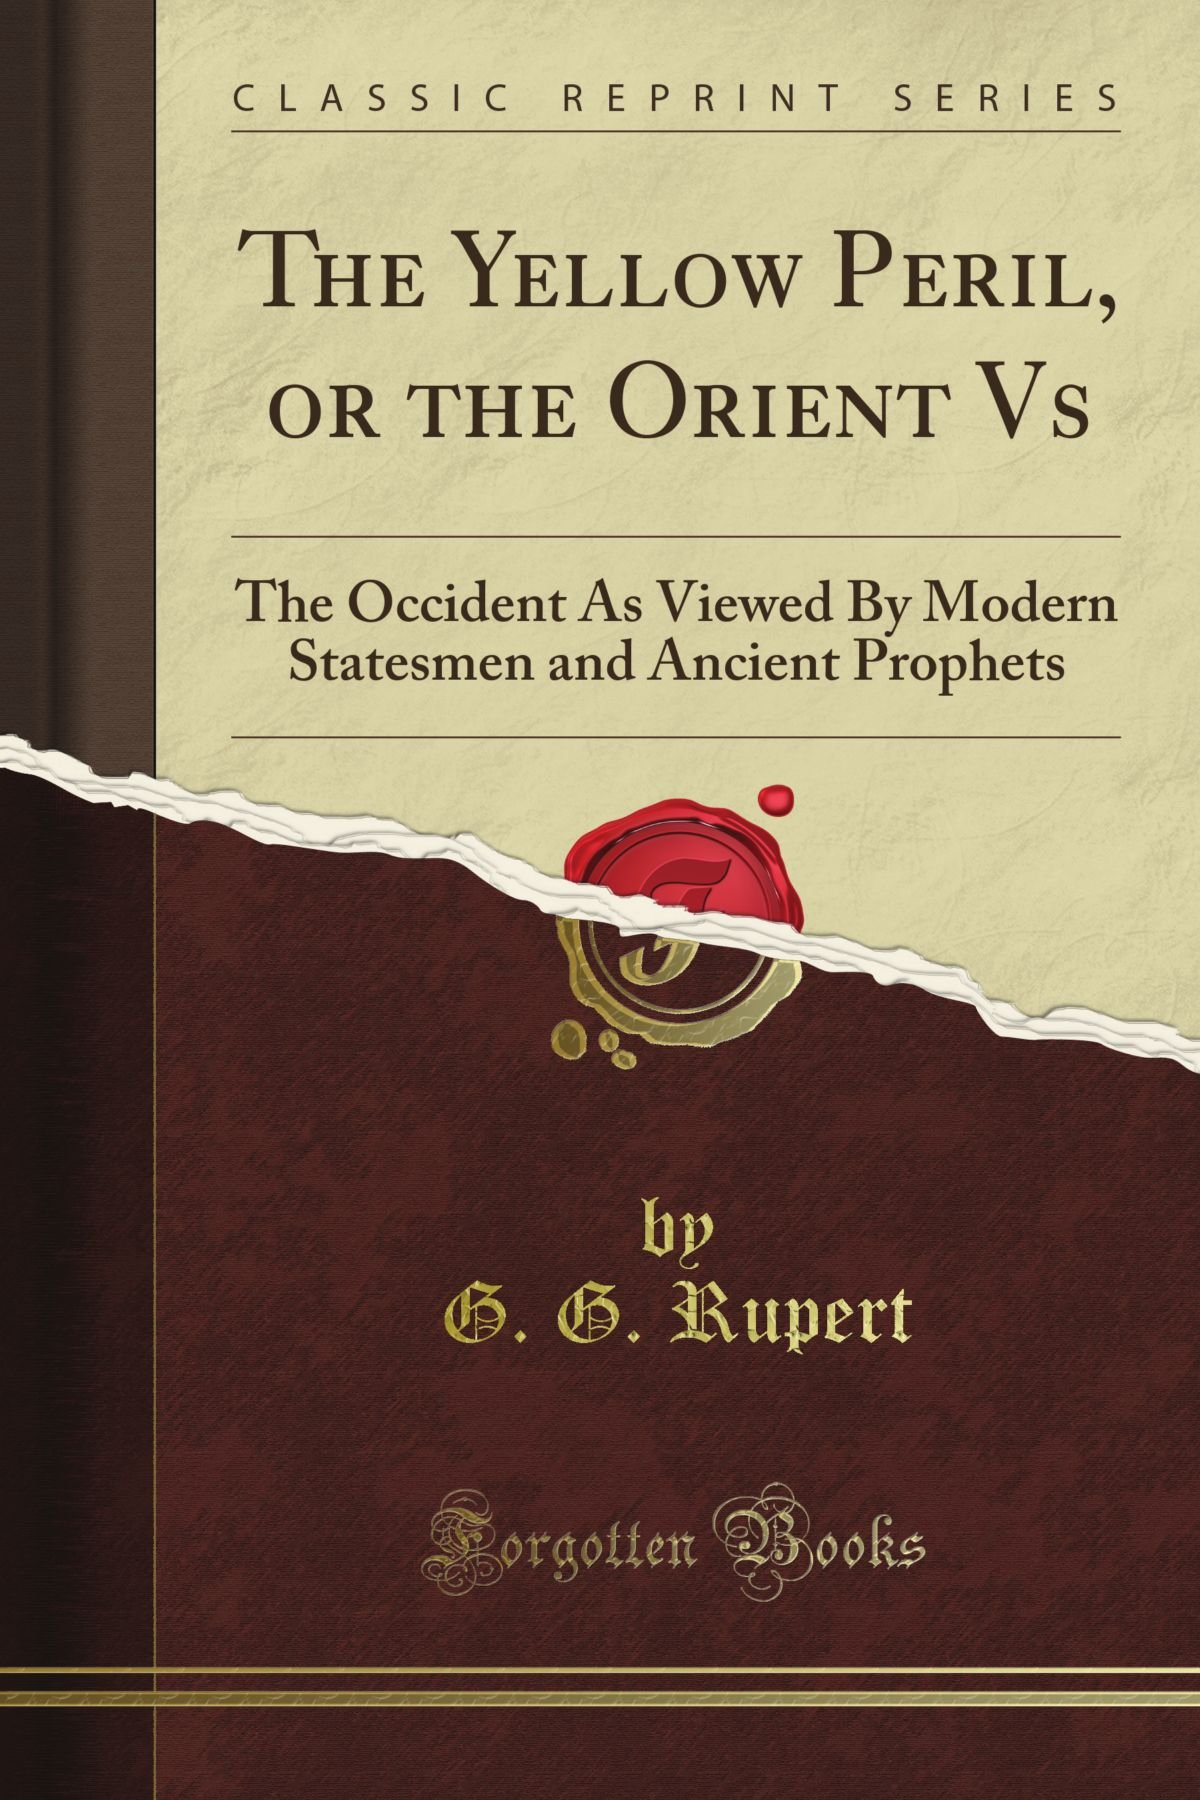 The Yellow Peril, or the Orient Vs: The Occident As Viewed By Modern Statesmen and Ancient Prophets (Classic Reprint) PDF